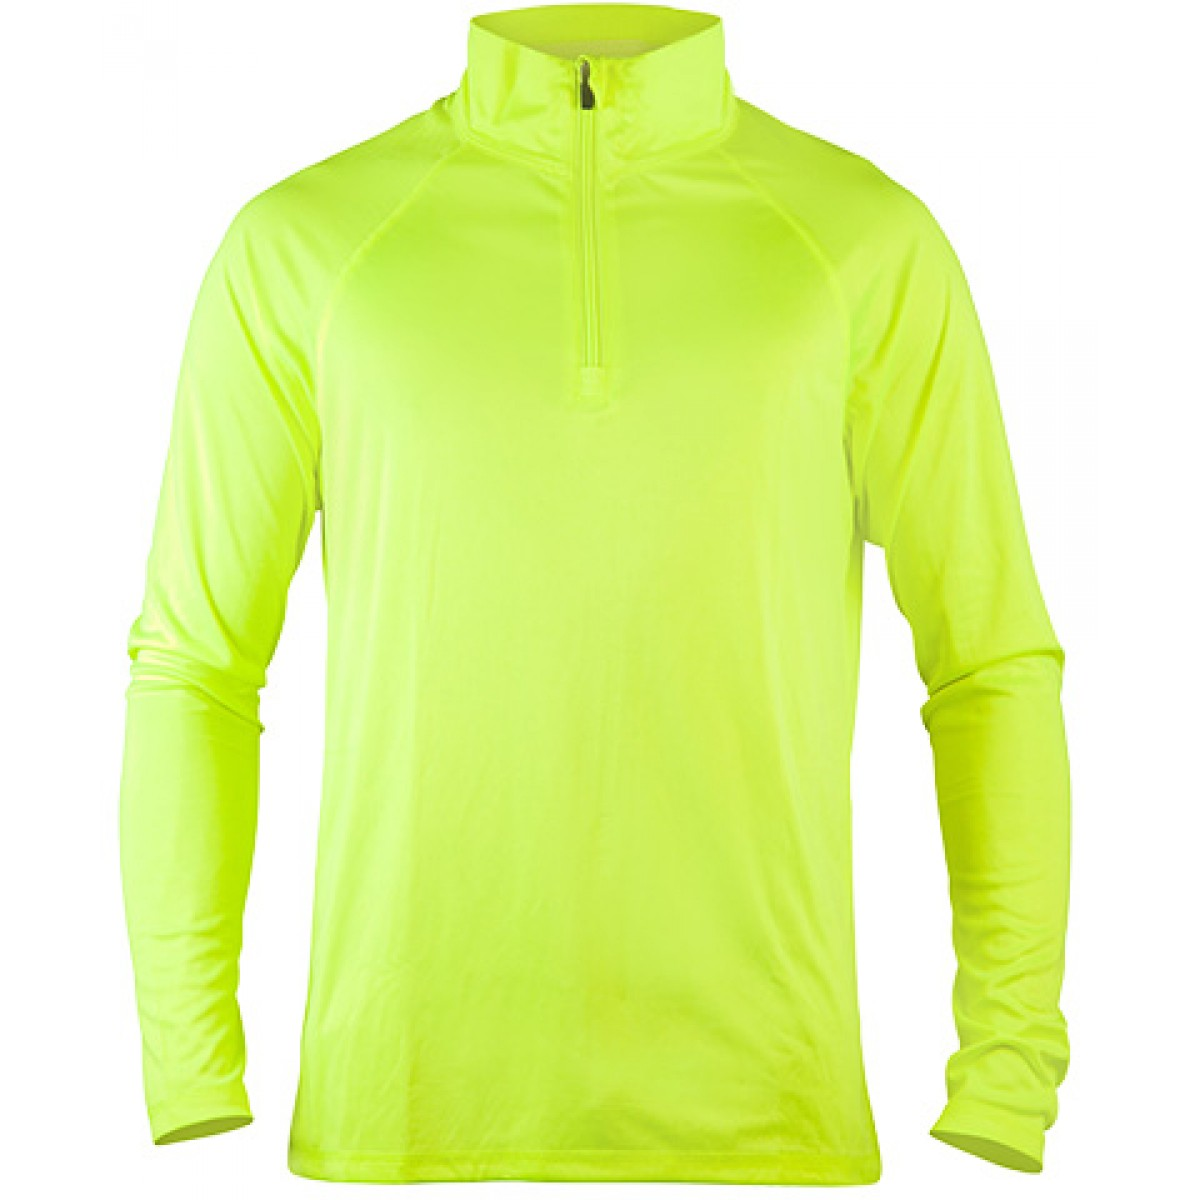 Men's Quarter-Zip Lightweight Pullover-Neon Green-M